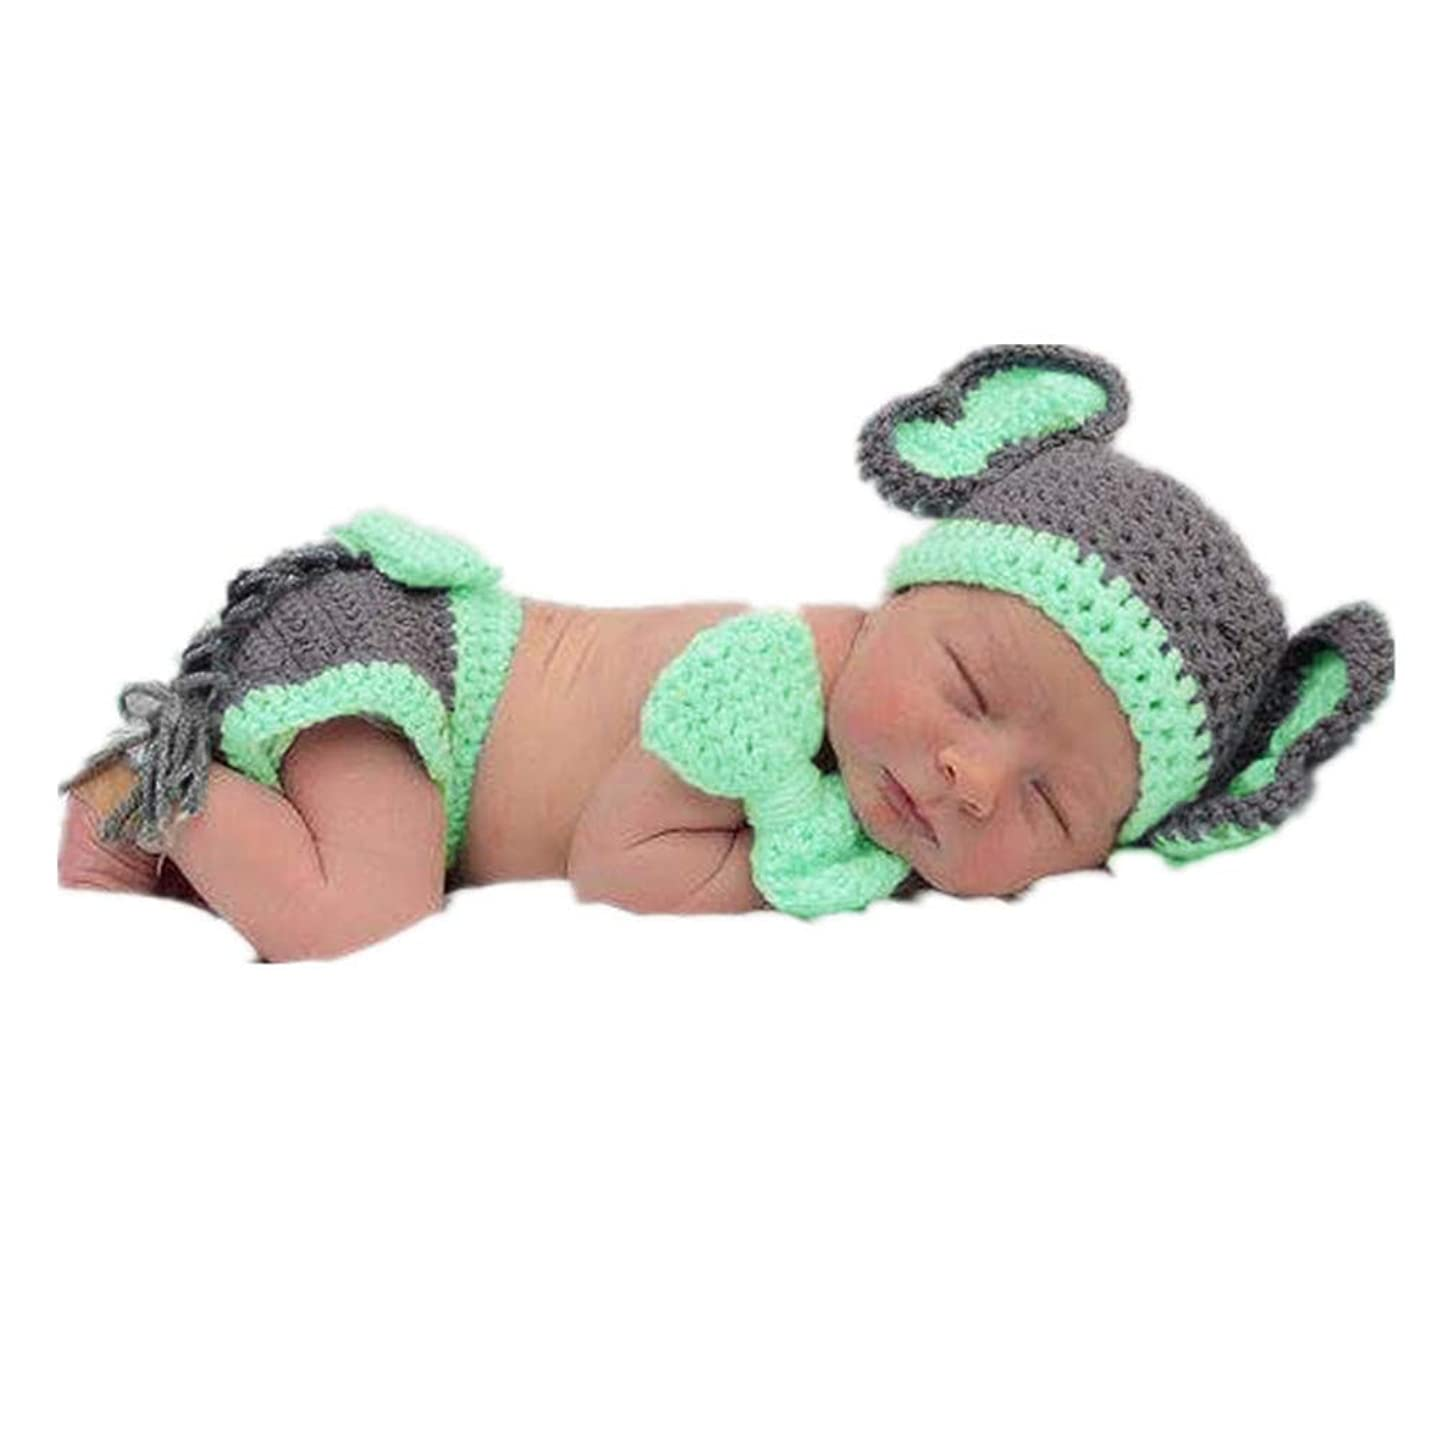 Coberllus Newborn Baby Photo Props Outfits Crochet Knitted Elephant Hat with Shorts Set for Boys Girls Photography Shoot flgovibsdlj2